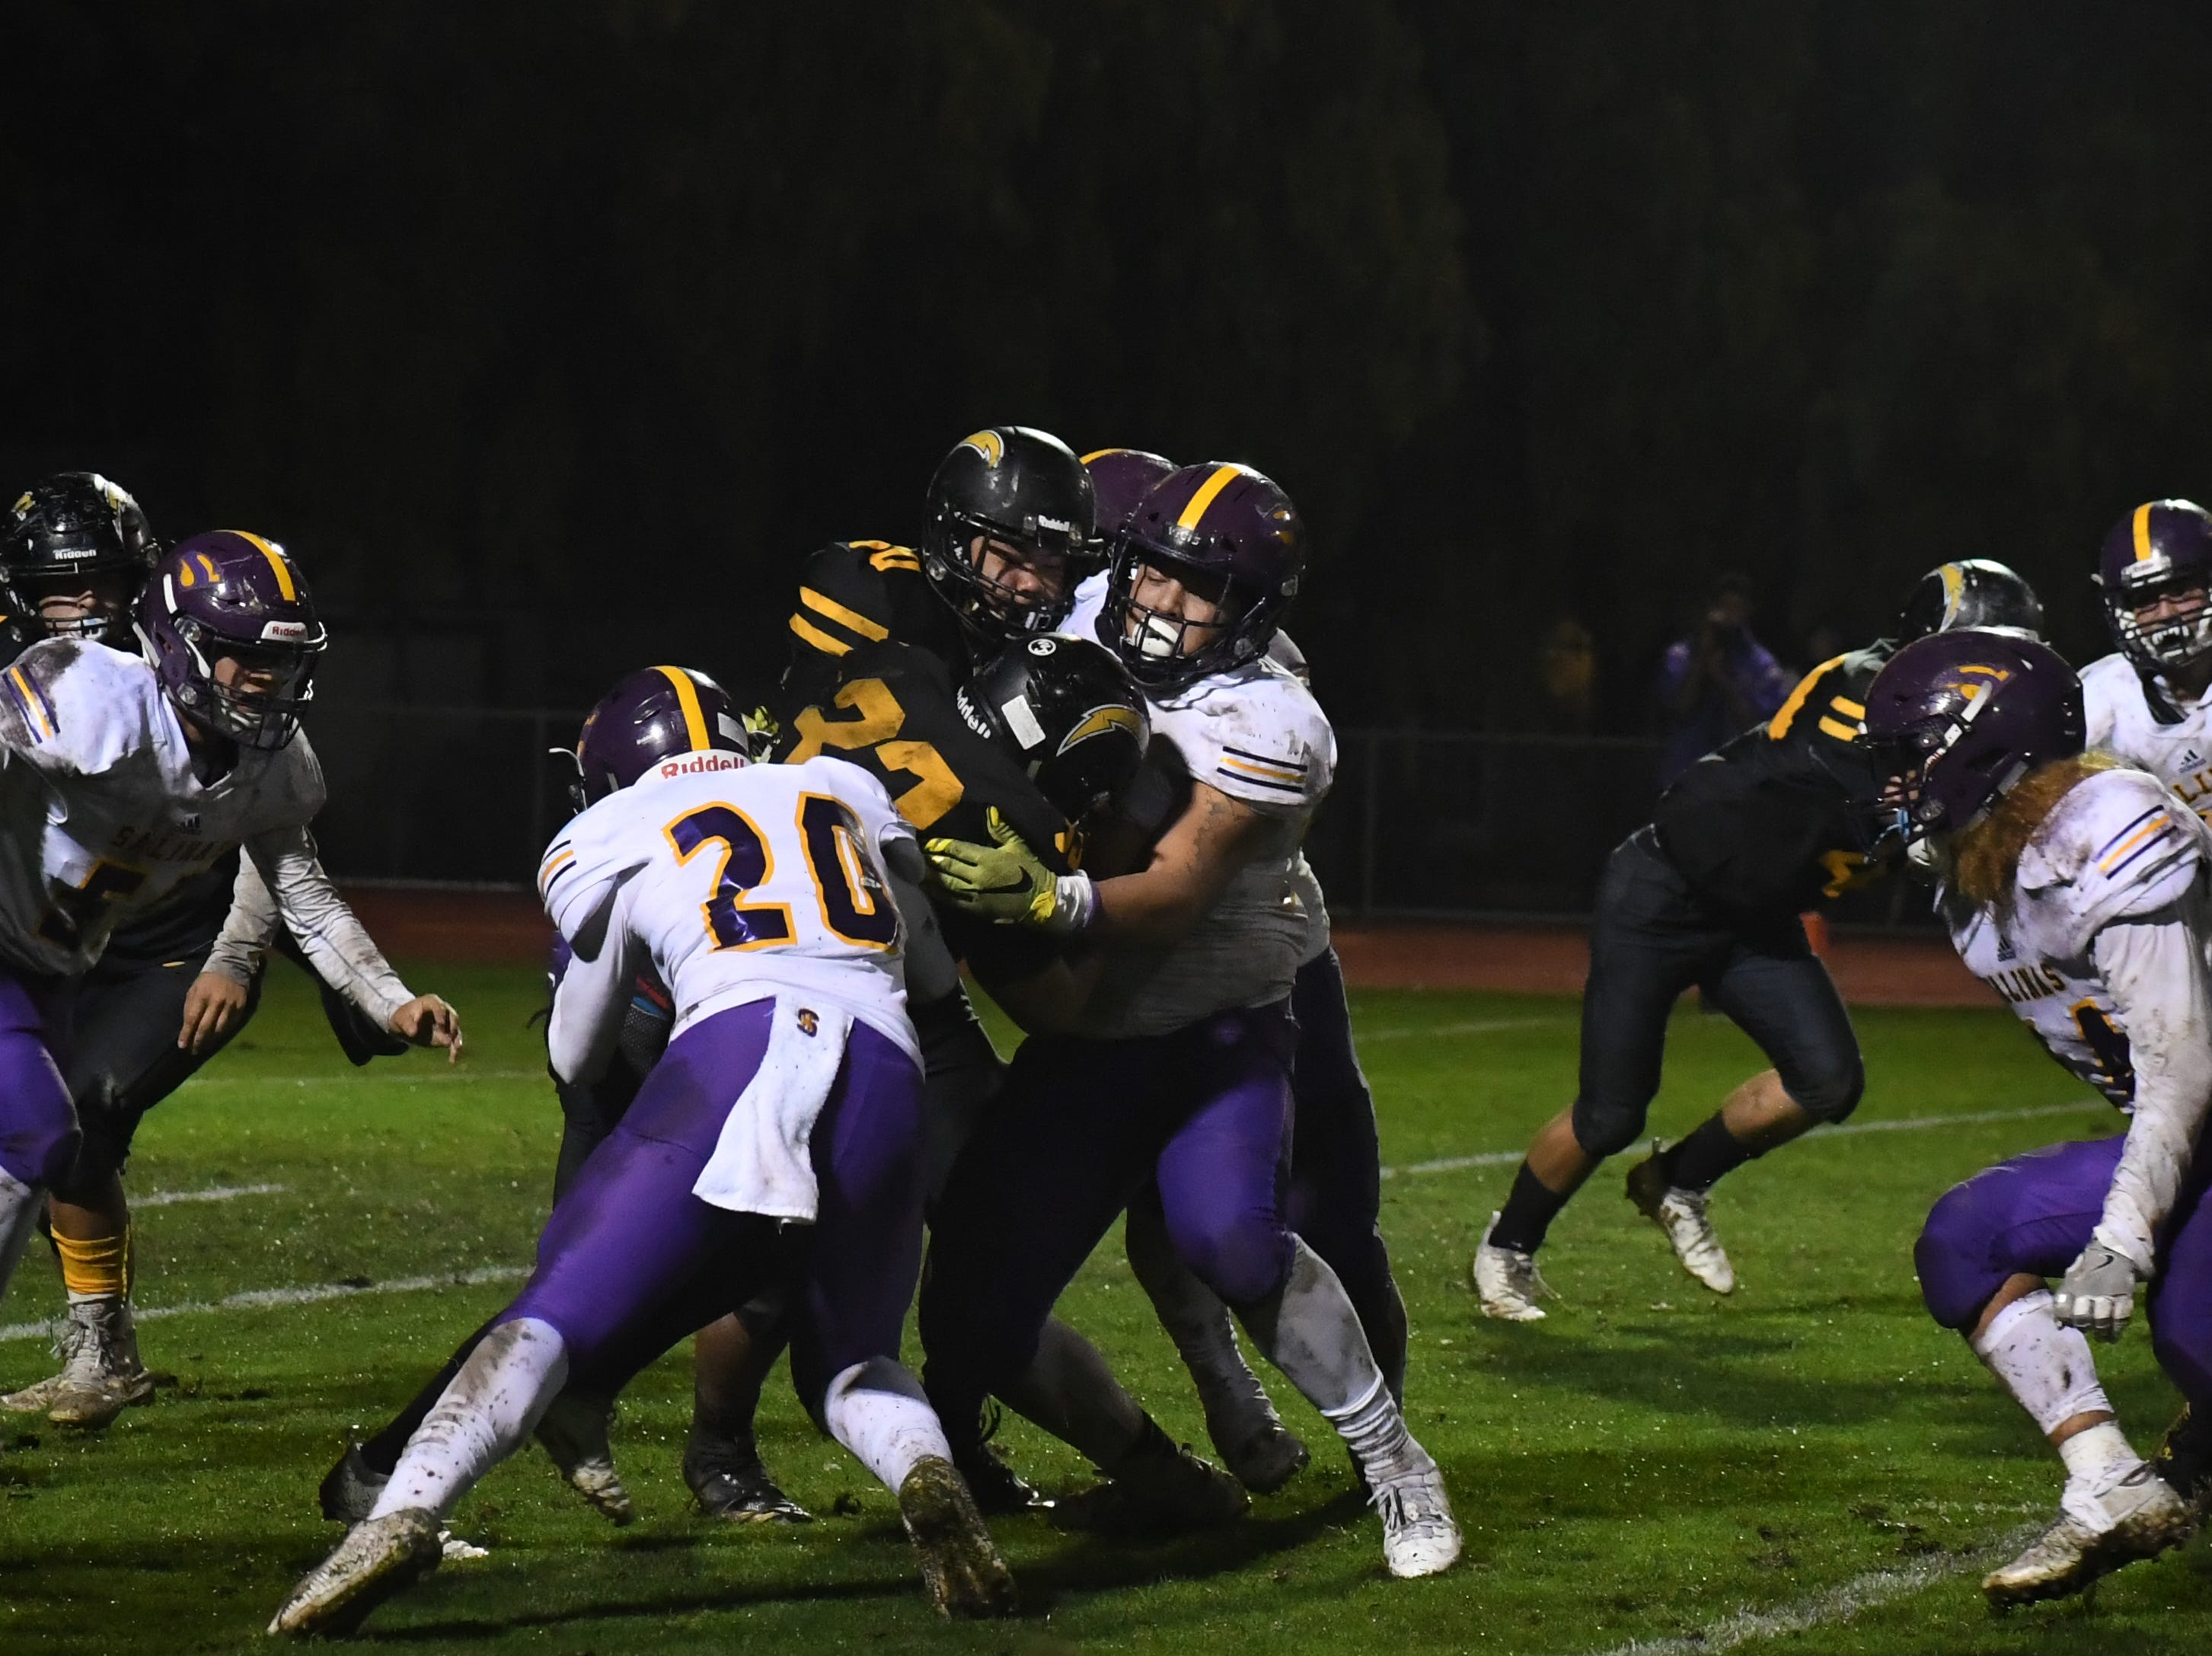 Salinas defensive lineman Sebastian Gomez (57) and linebacker Joey Moag (20) wrap up a Wilcox running back.